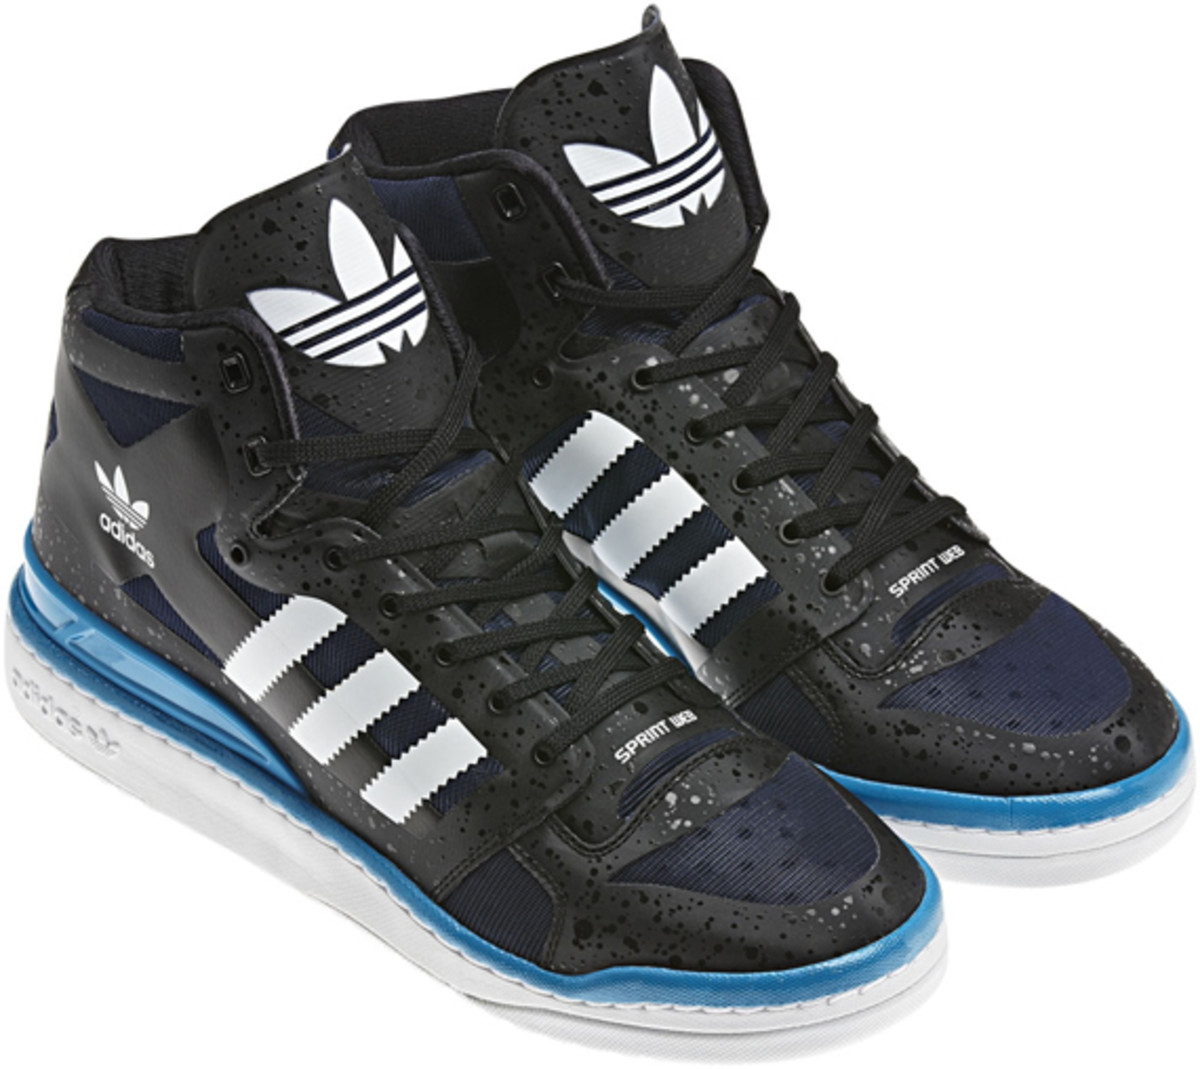 adidas-originals-forum-crazy-light-g51708-05